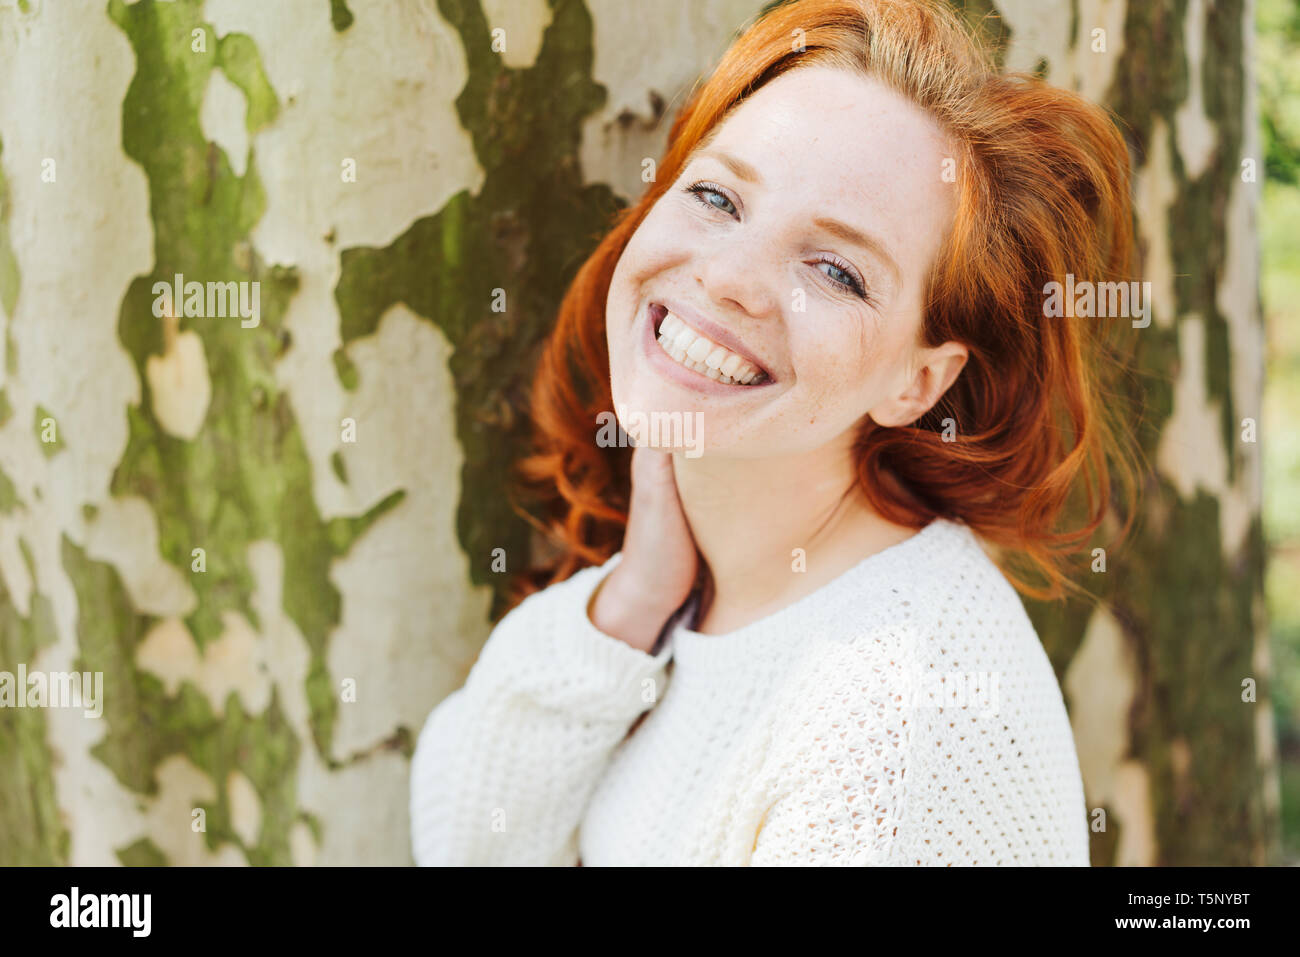 Smiling happy young redhead woman with a toothy grin standing in front of a large tree trunk turning to smile at the camera - Stock Image